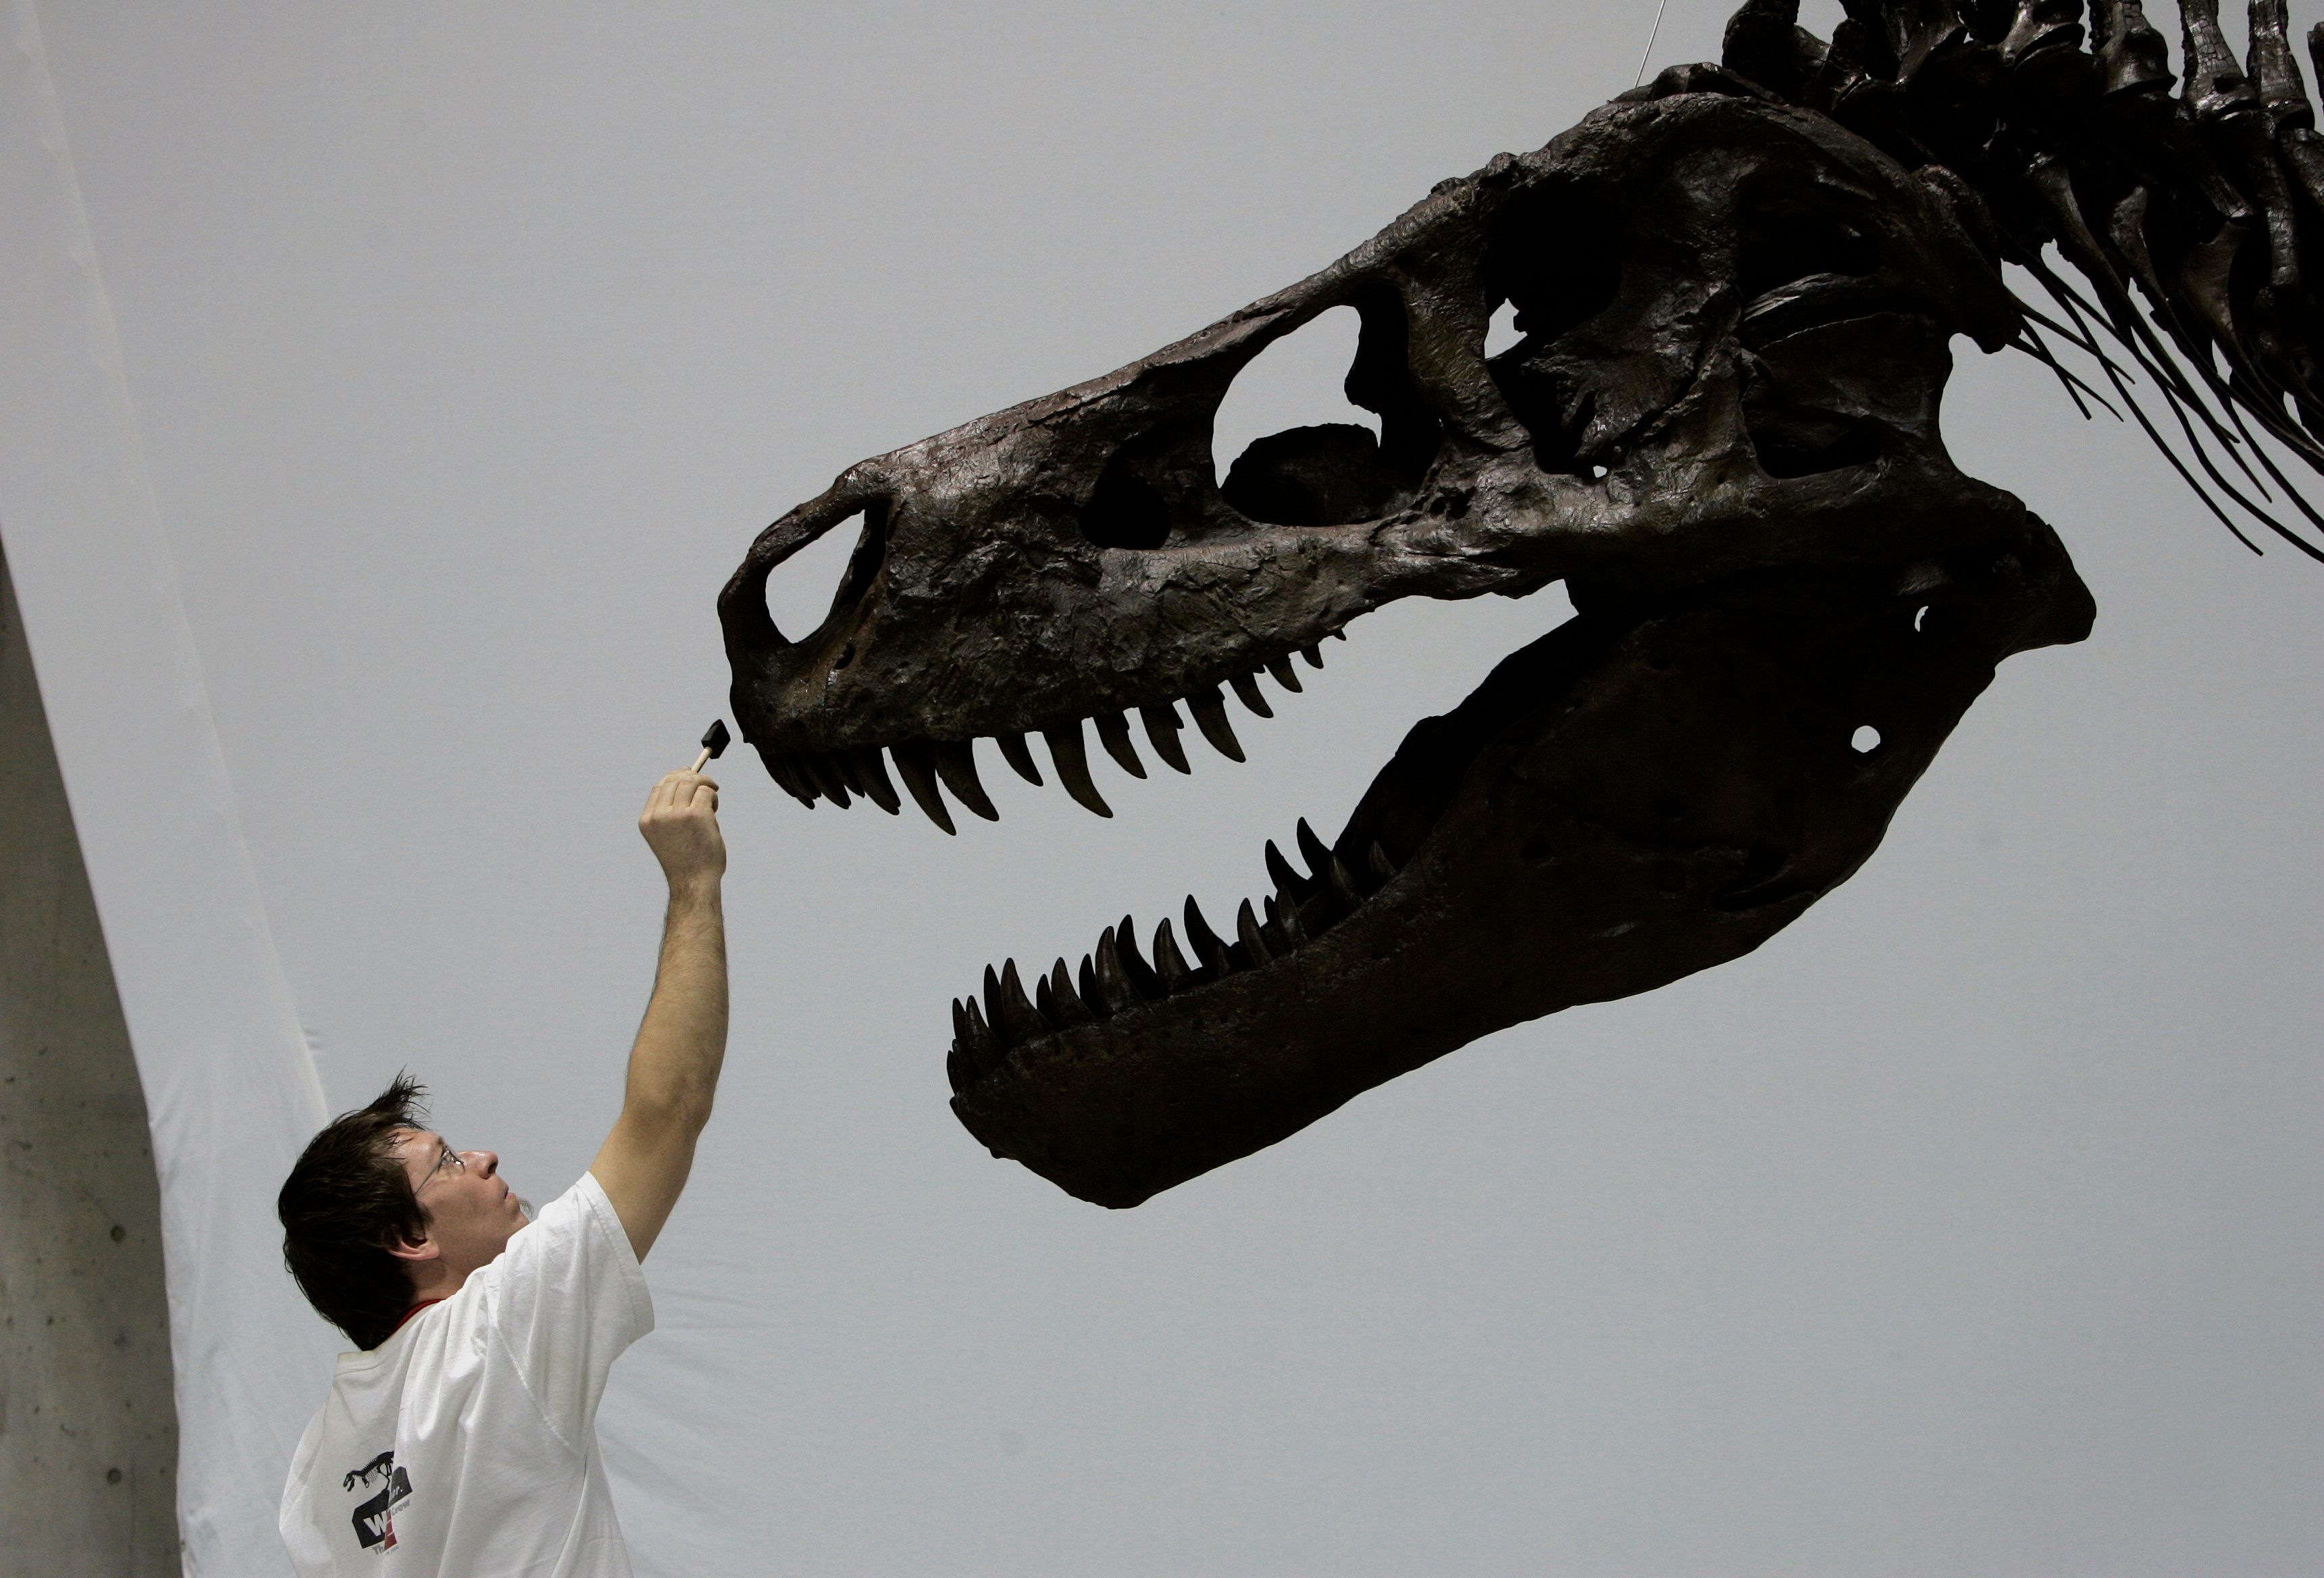 <p>David Hanke, an officer from the Exhibition Department of the Field Museum in Chicago, withthe skull of the world's largest Tyrannosaurus rex specimen, named Sue. AFP PHOTO/TOSHIFUMI KITAMURA (Photo credit should read TOSHIFUMI KITAMURA/AFP/Getty Images)</p>